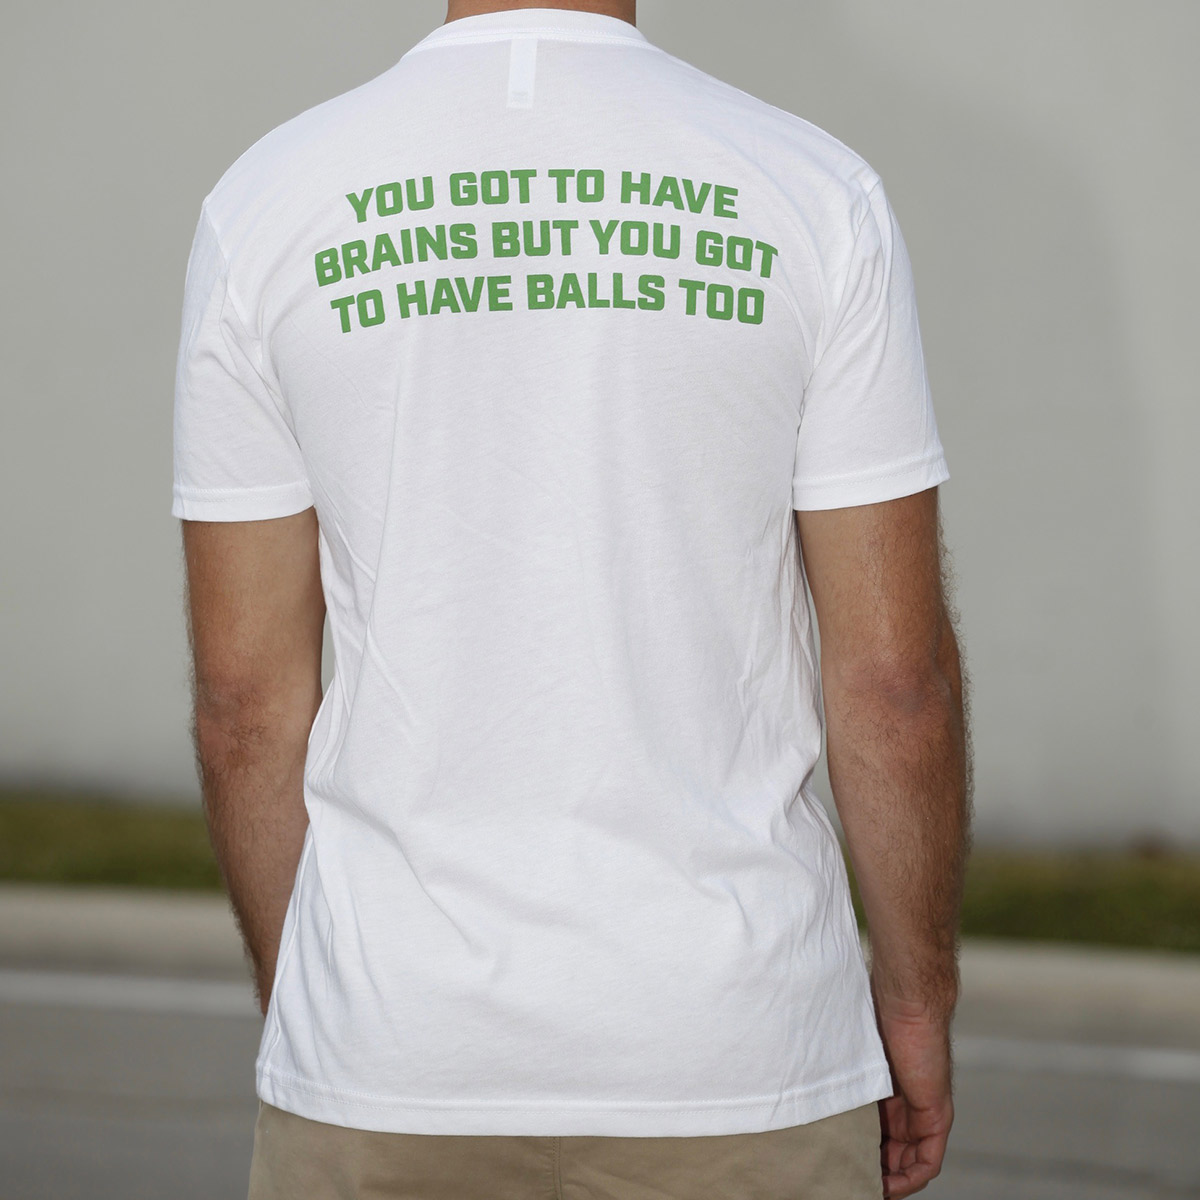 You got to have brains but you got to have balls too - white t shirt - back